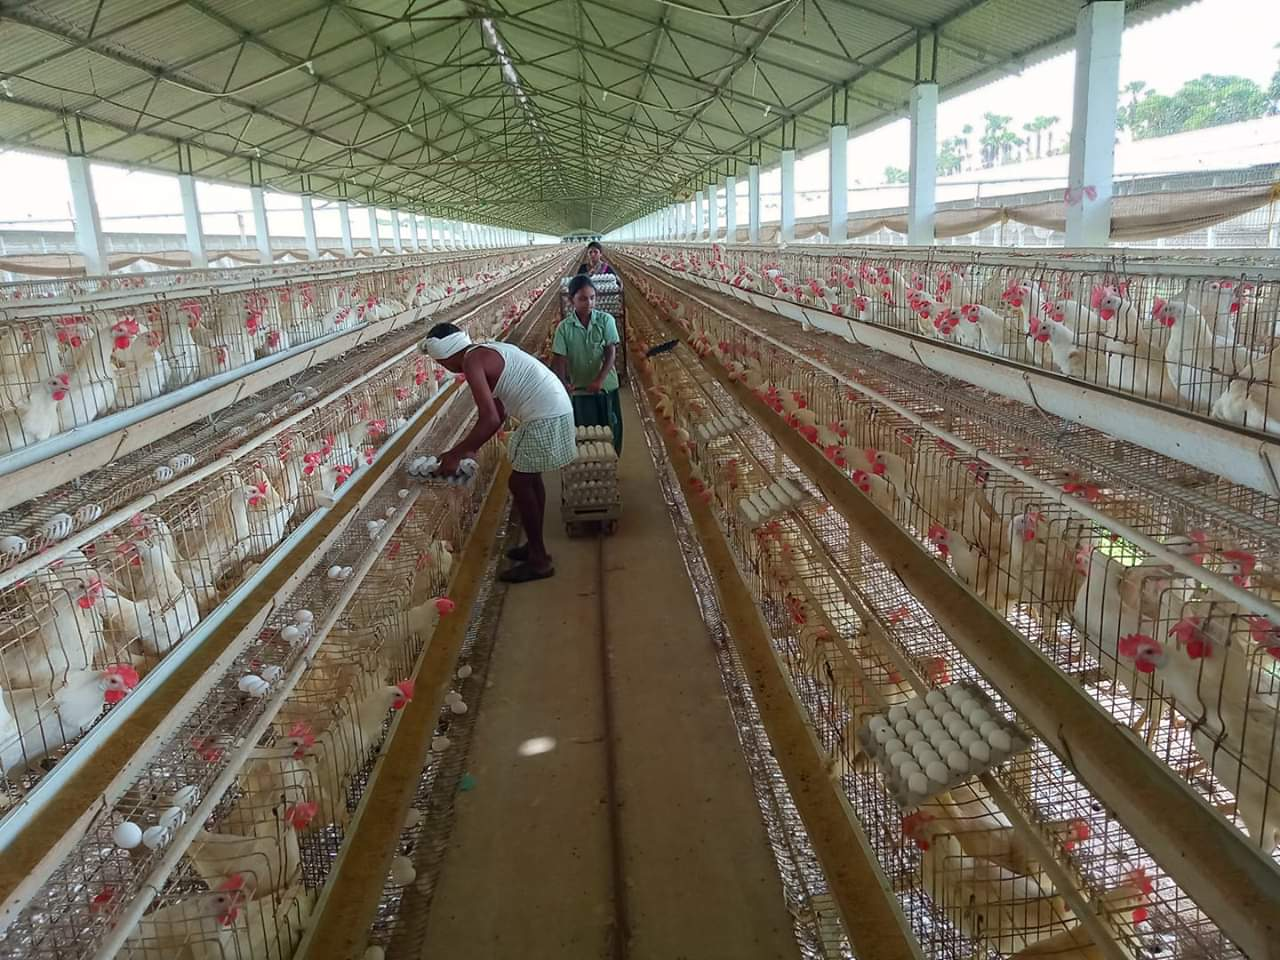 Housing for poultry business